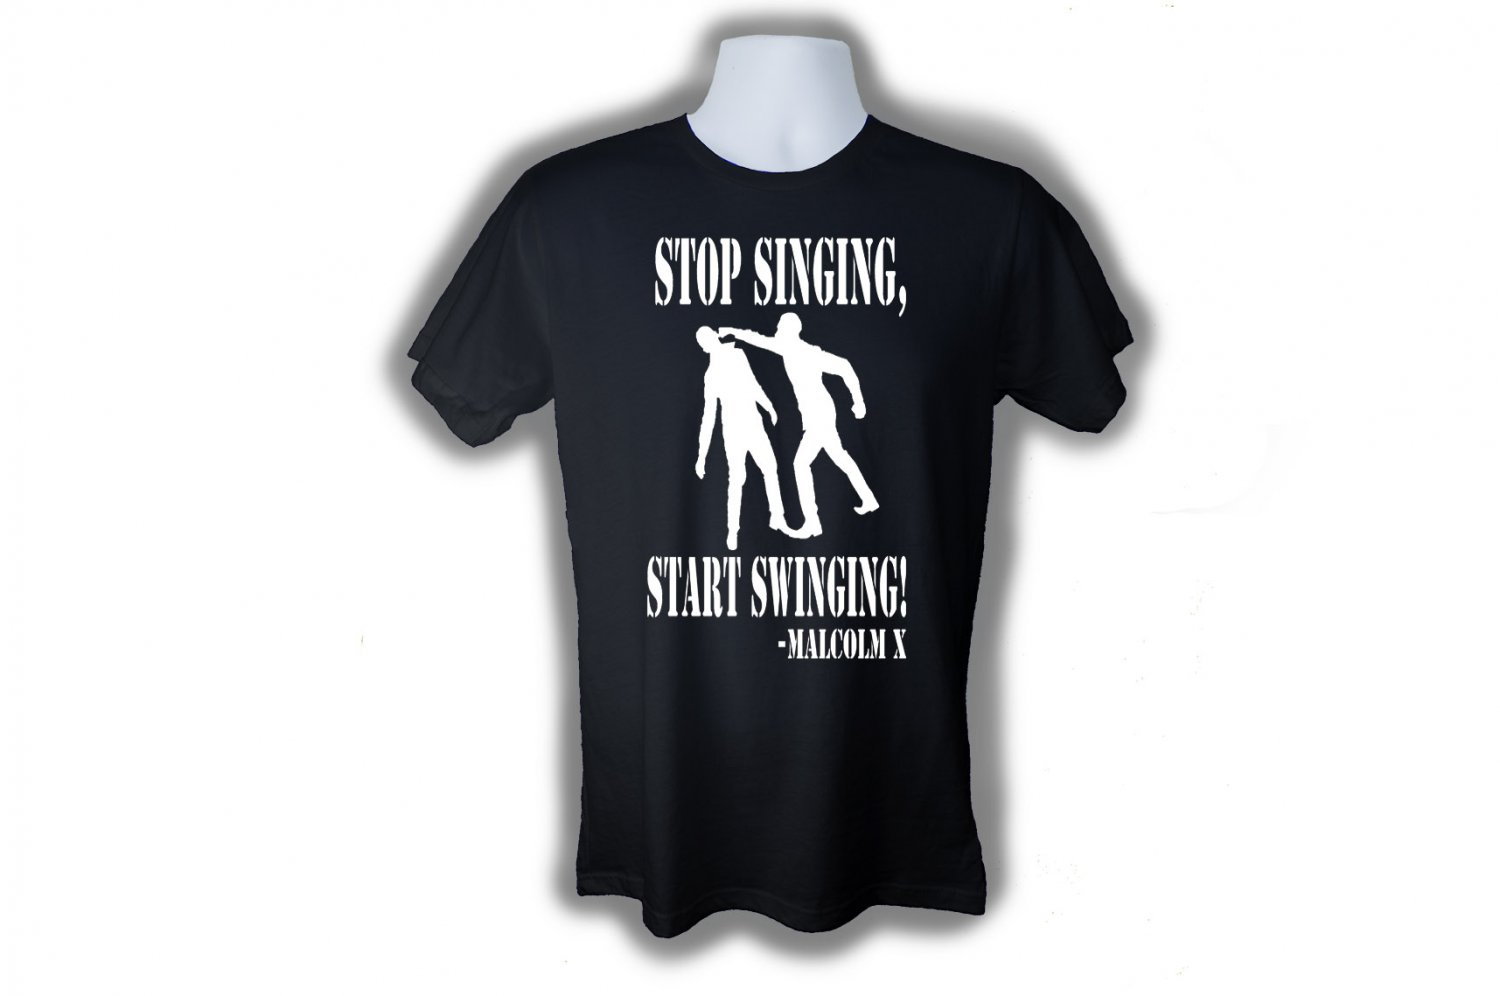 STOP SINGING AND START SWINGING MALCOLM X T-SHIRT (M)